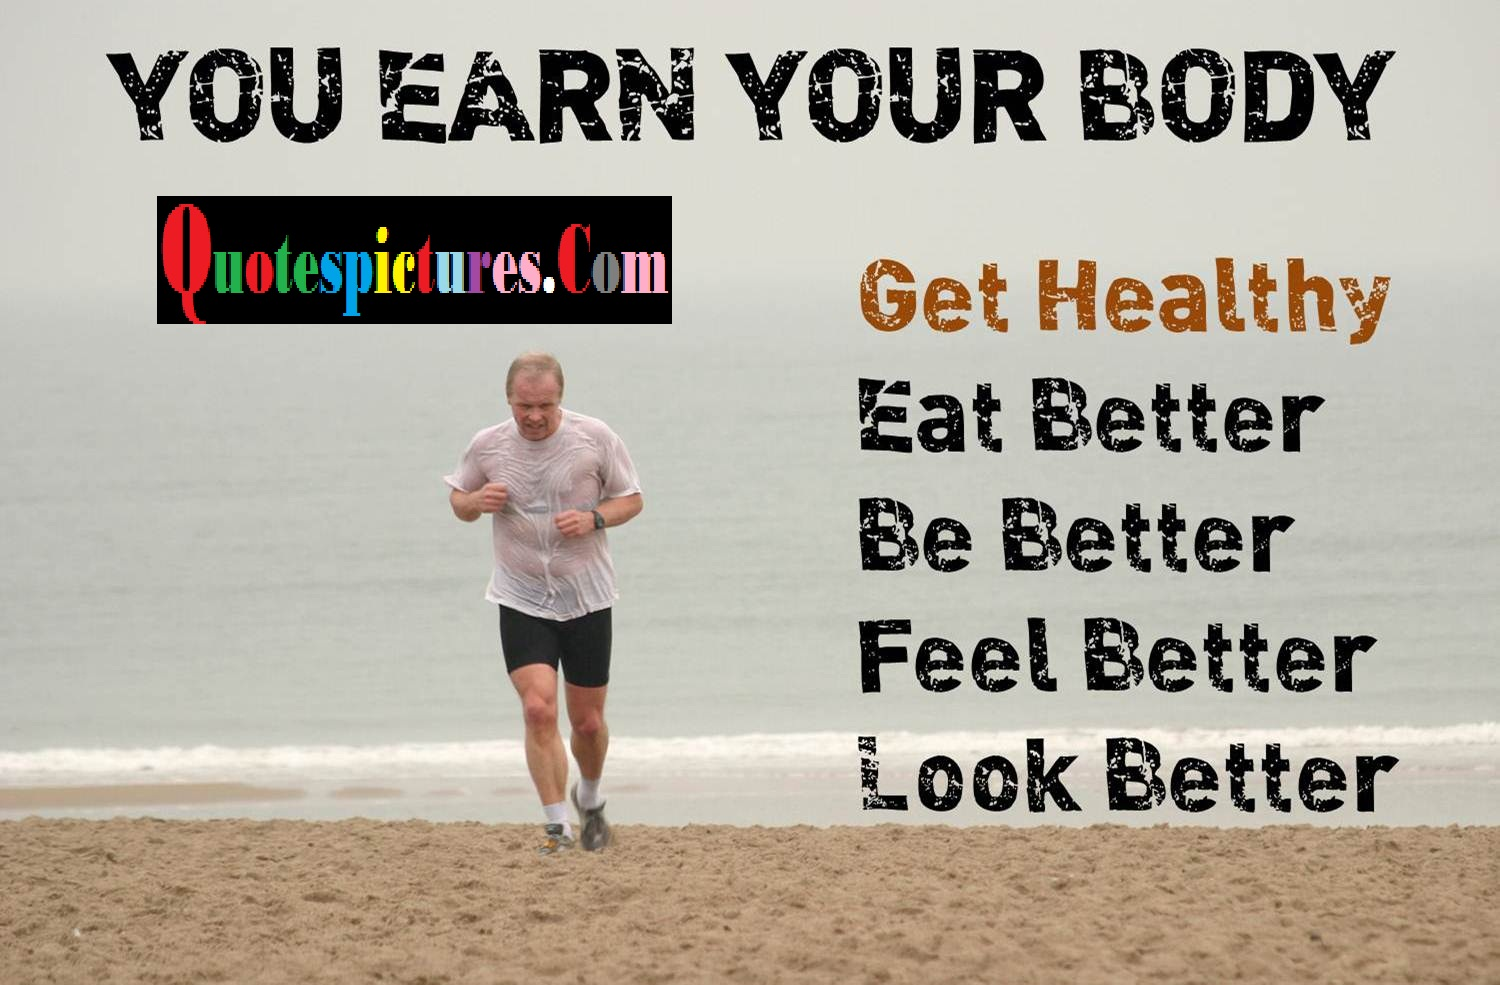 Body Quotes - You Earn Your Body